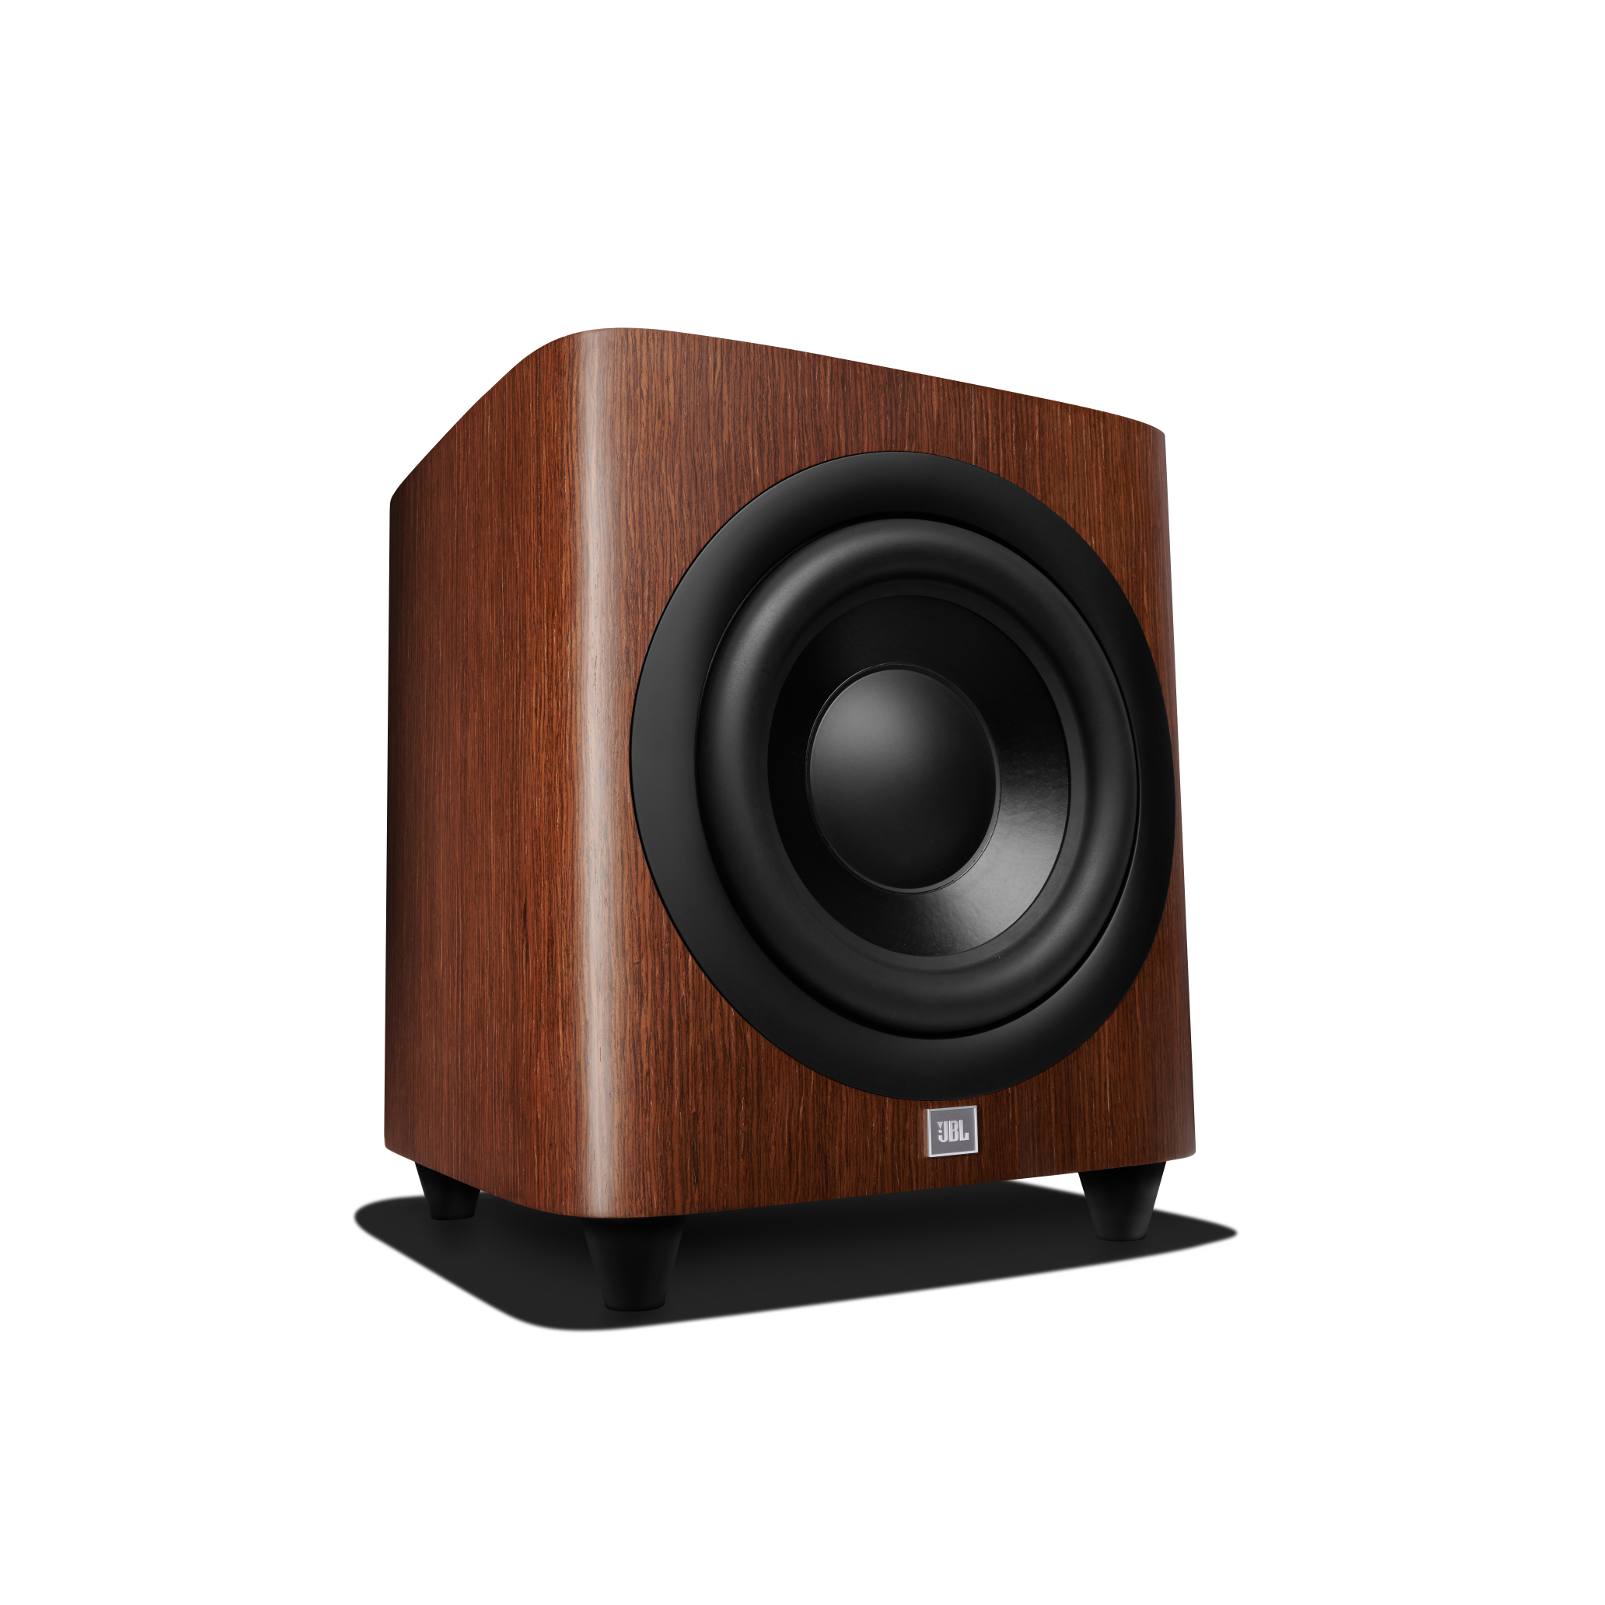 HDI-1200P - Walnut - 12-inch (300mm) 1000W Powered Subwoofer - Left